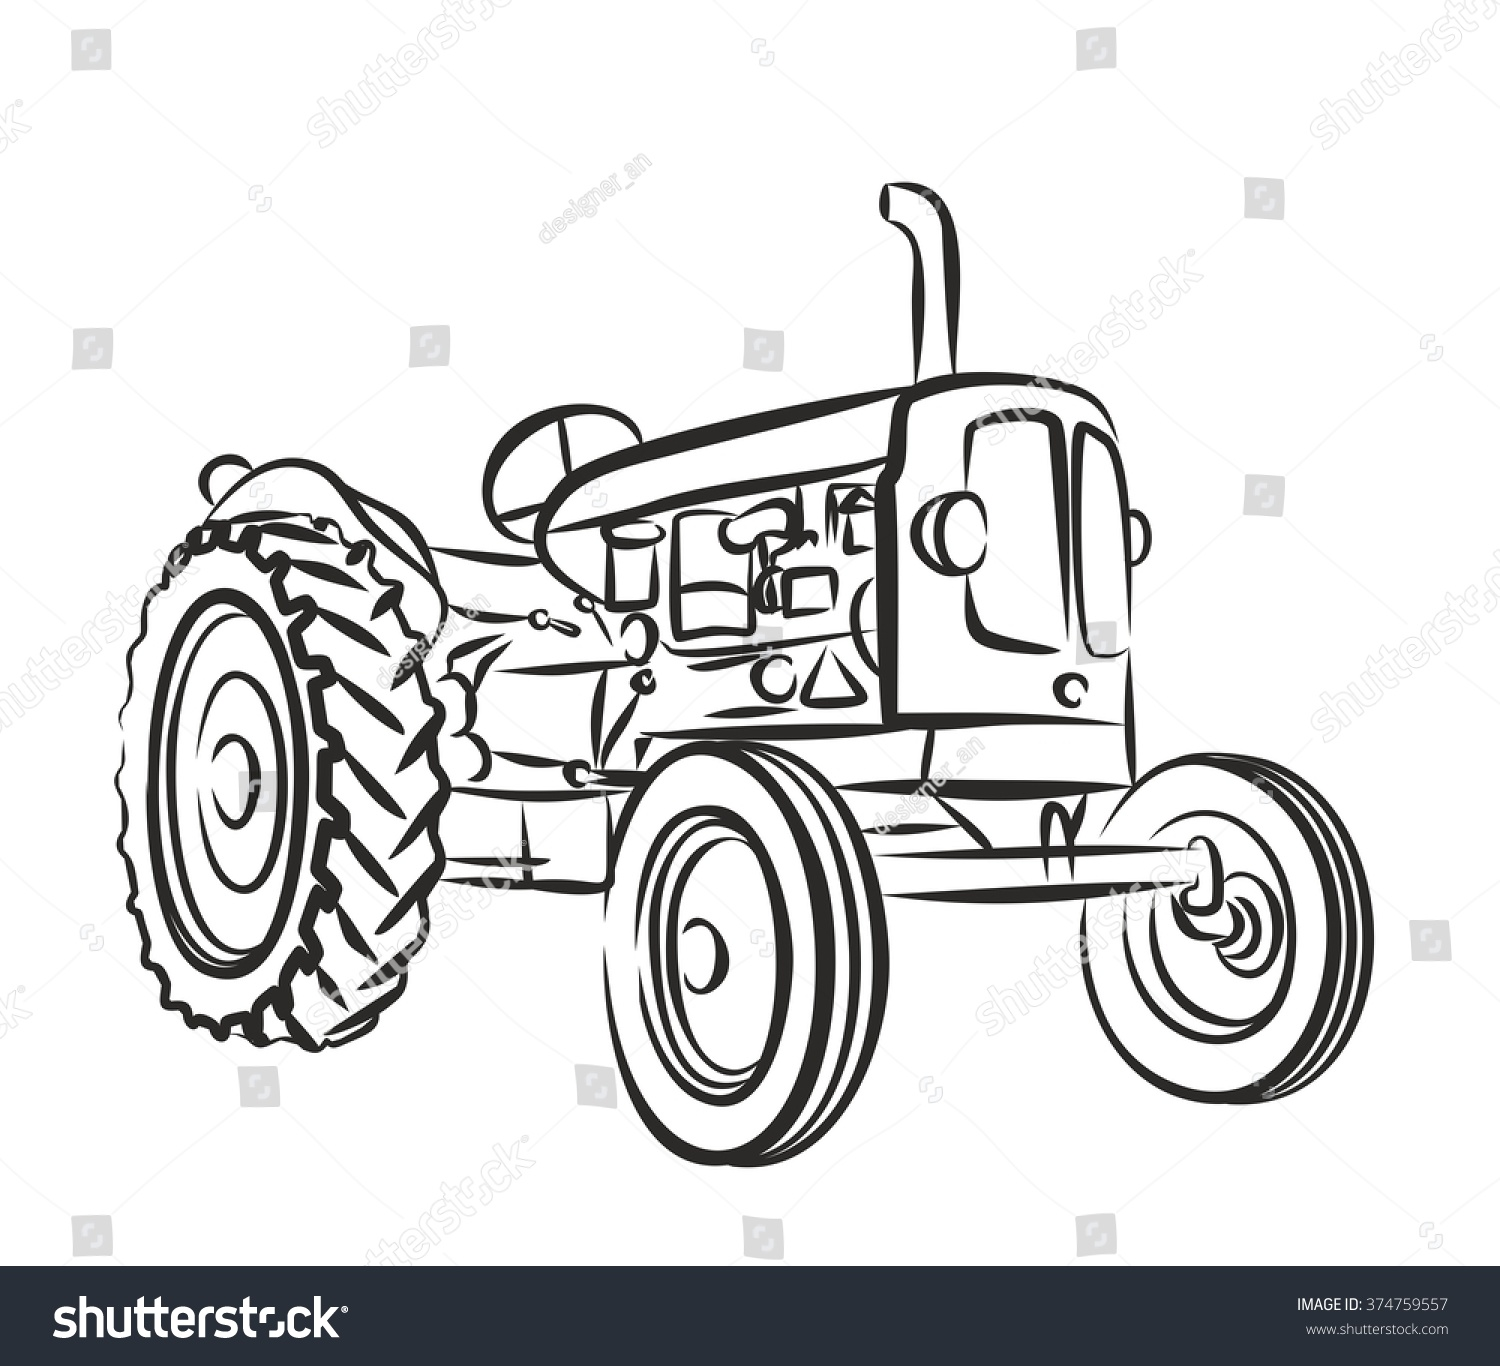 Line Drawing Tractor : Sketch old tractor stock vector shutterstock